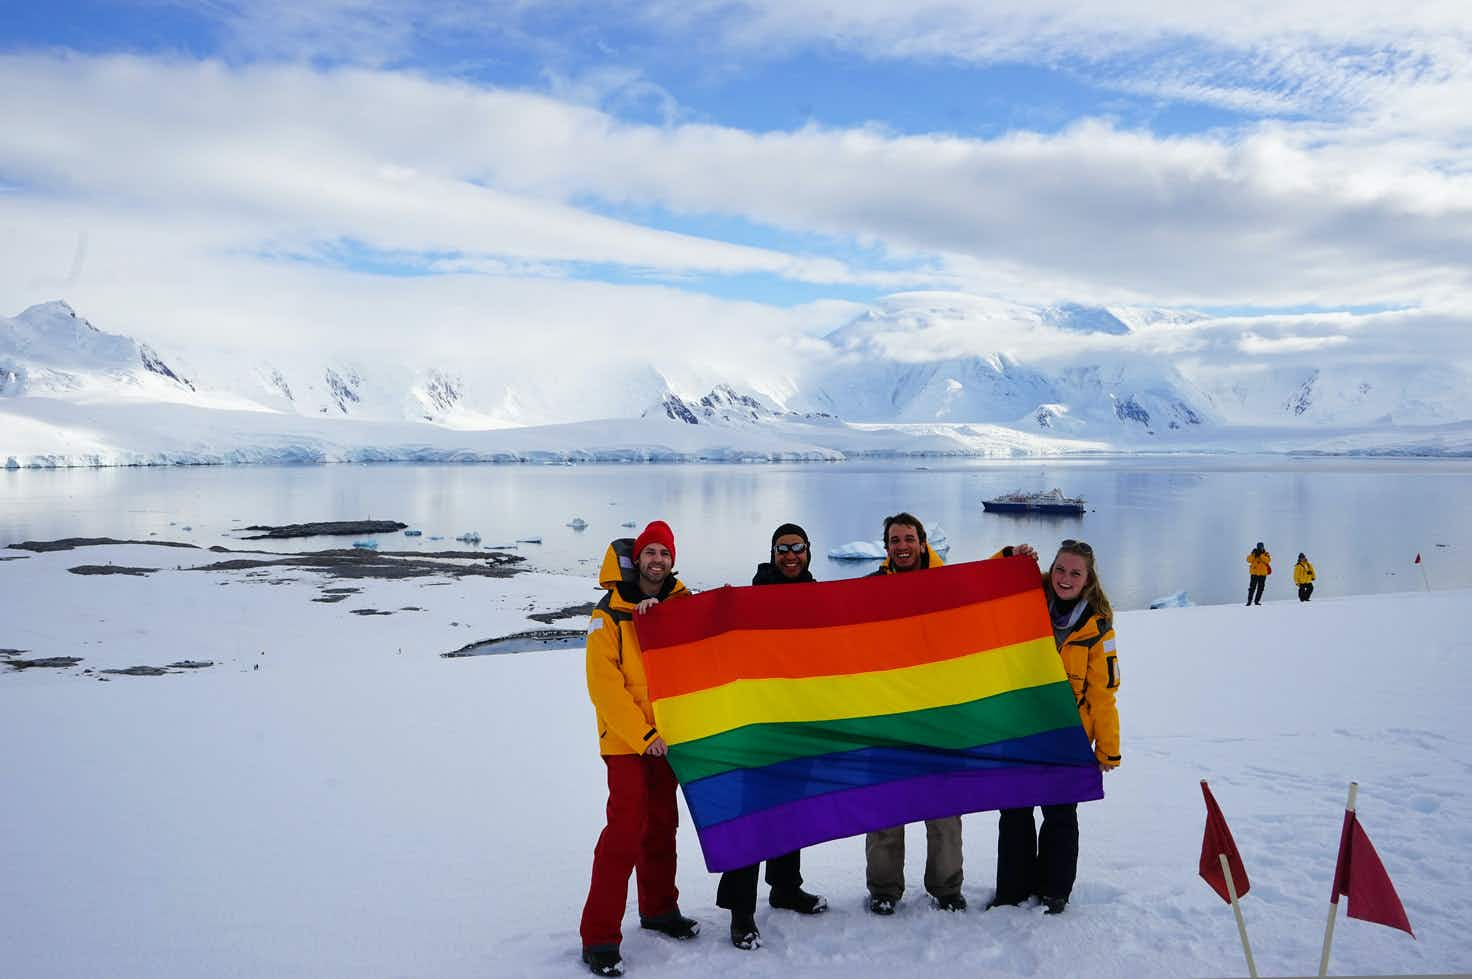 Antarctica set to celebrate its first Pride event